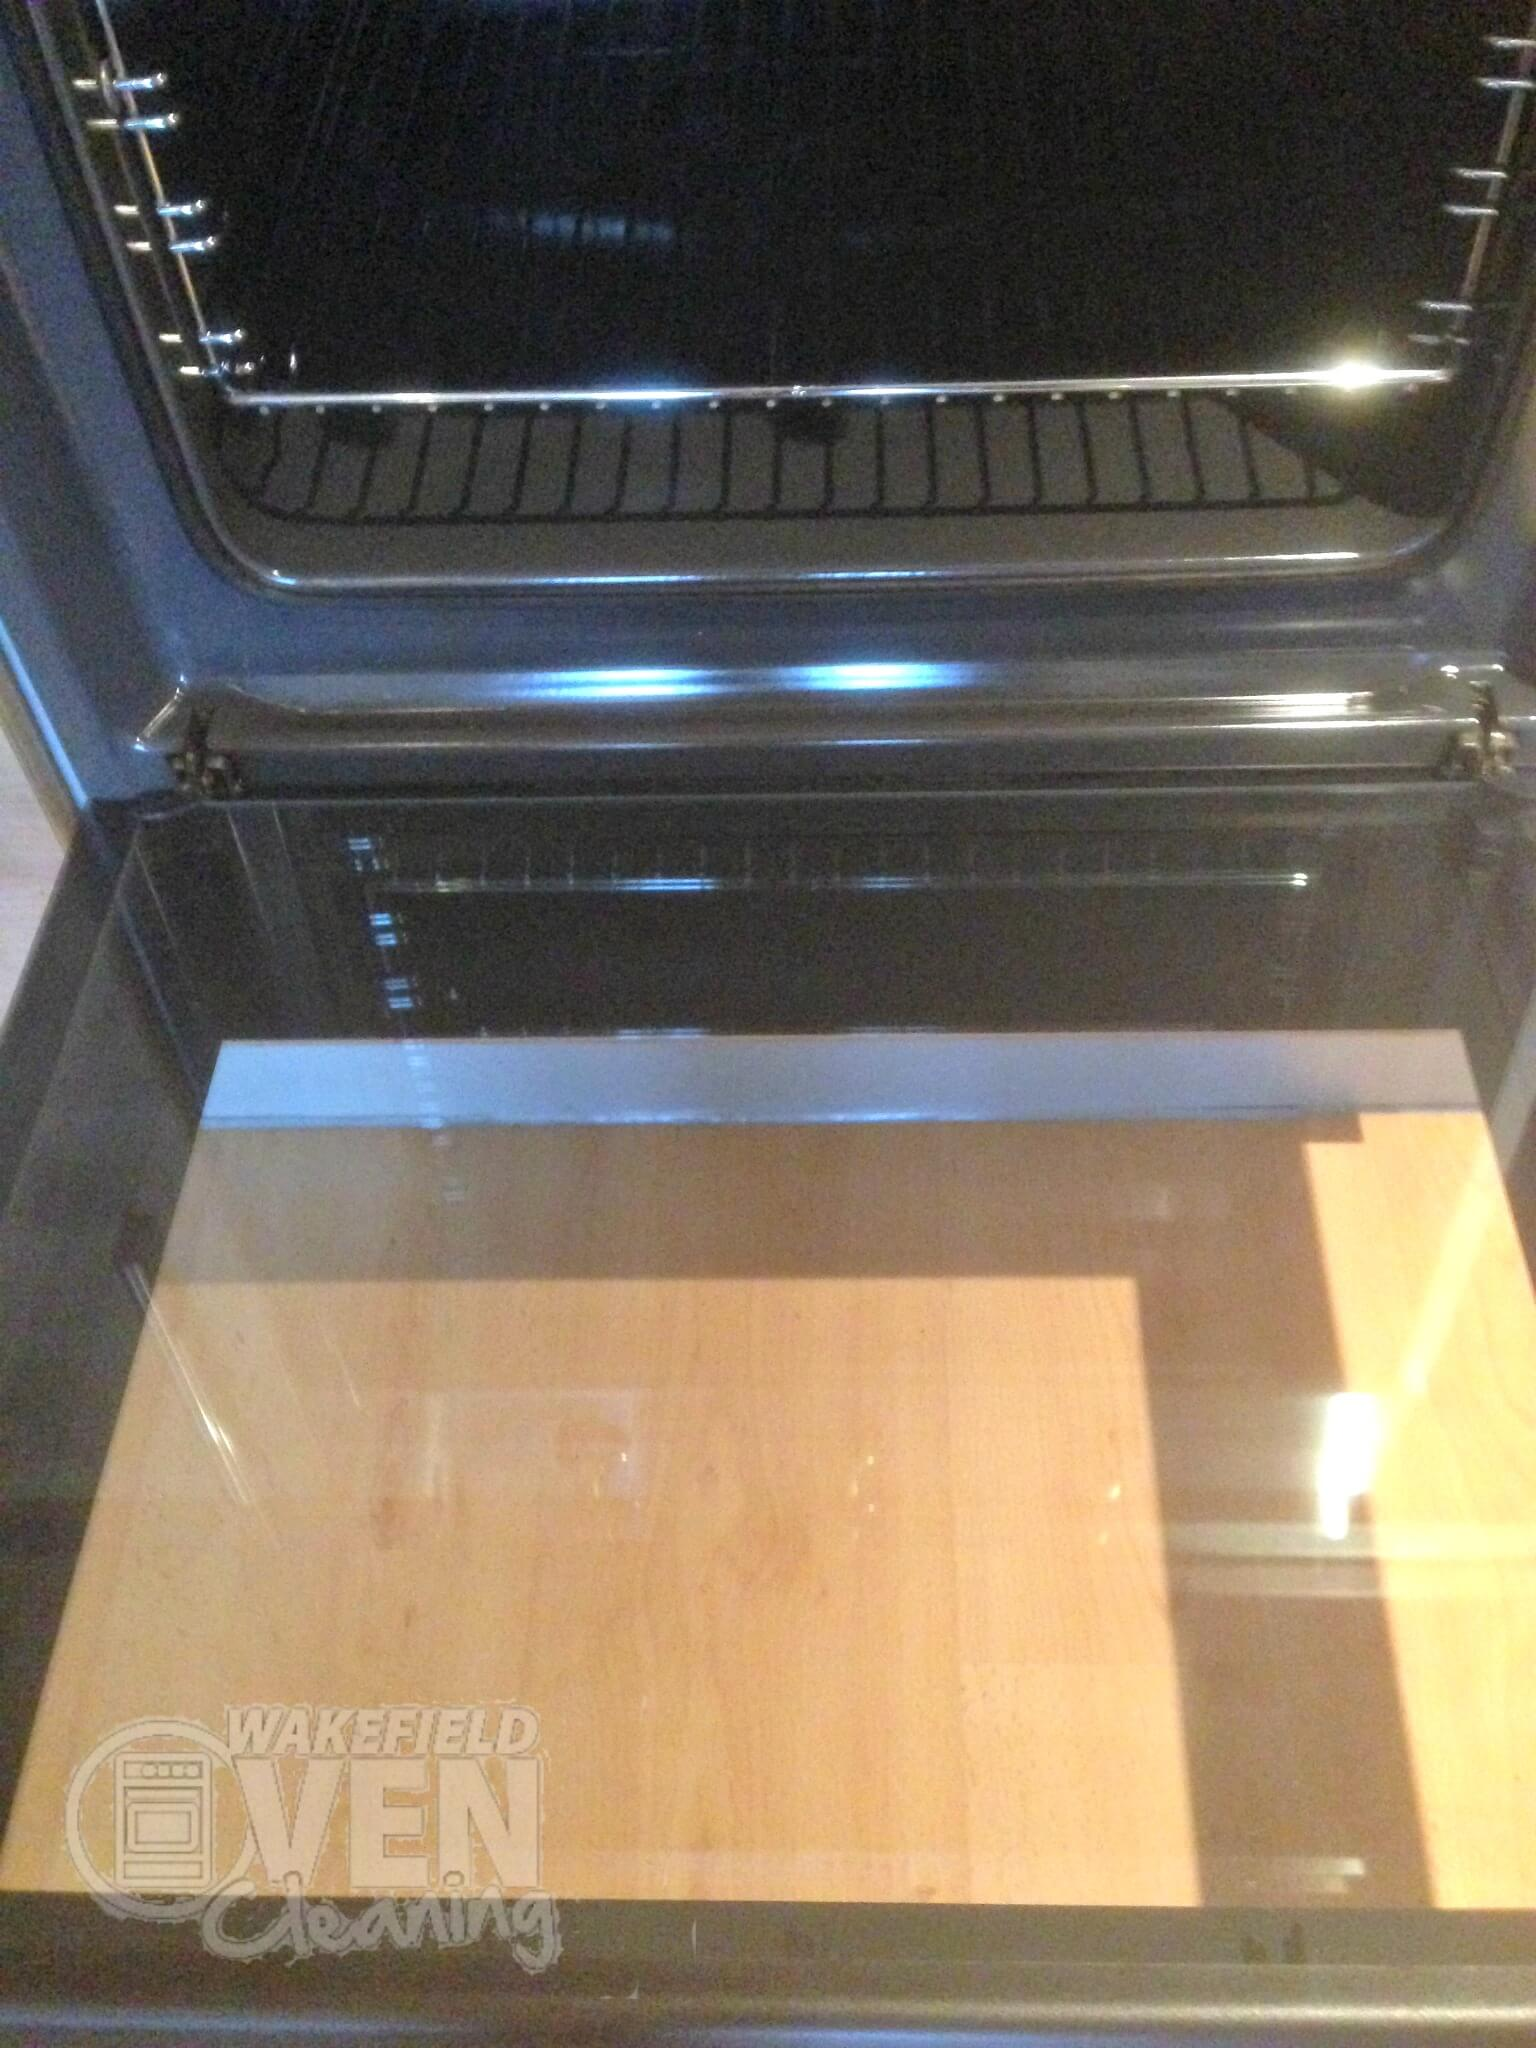 Wakefield Oven Cleaning